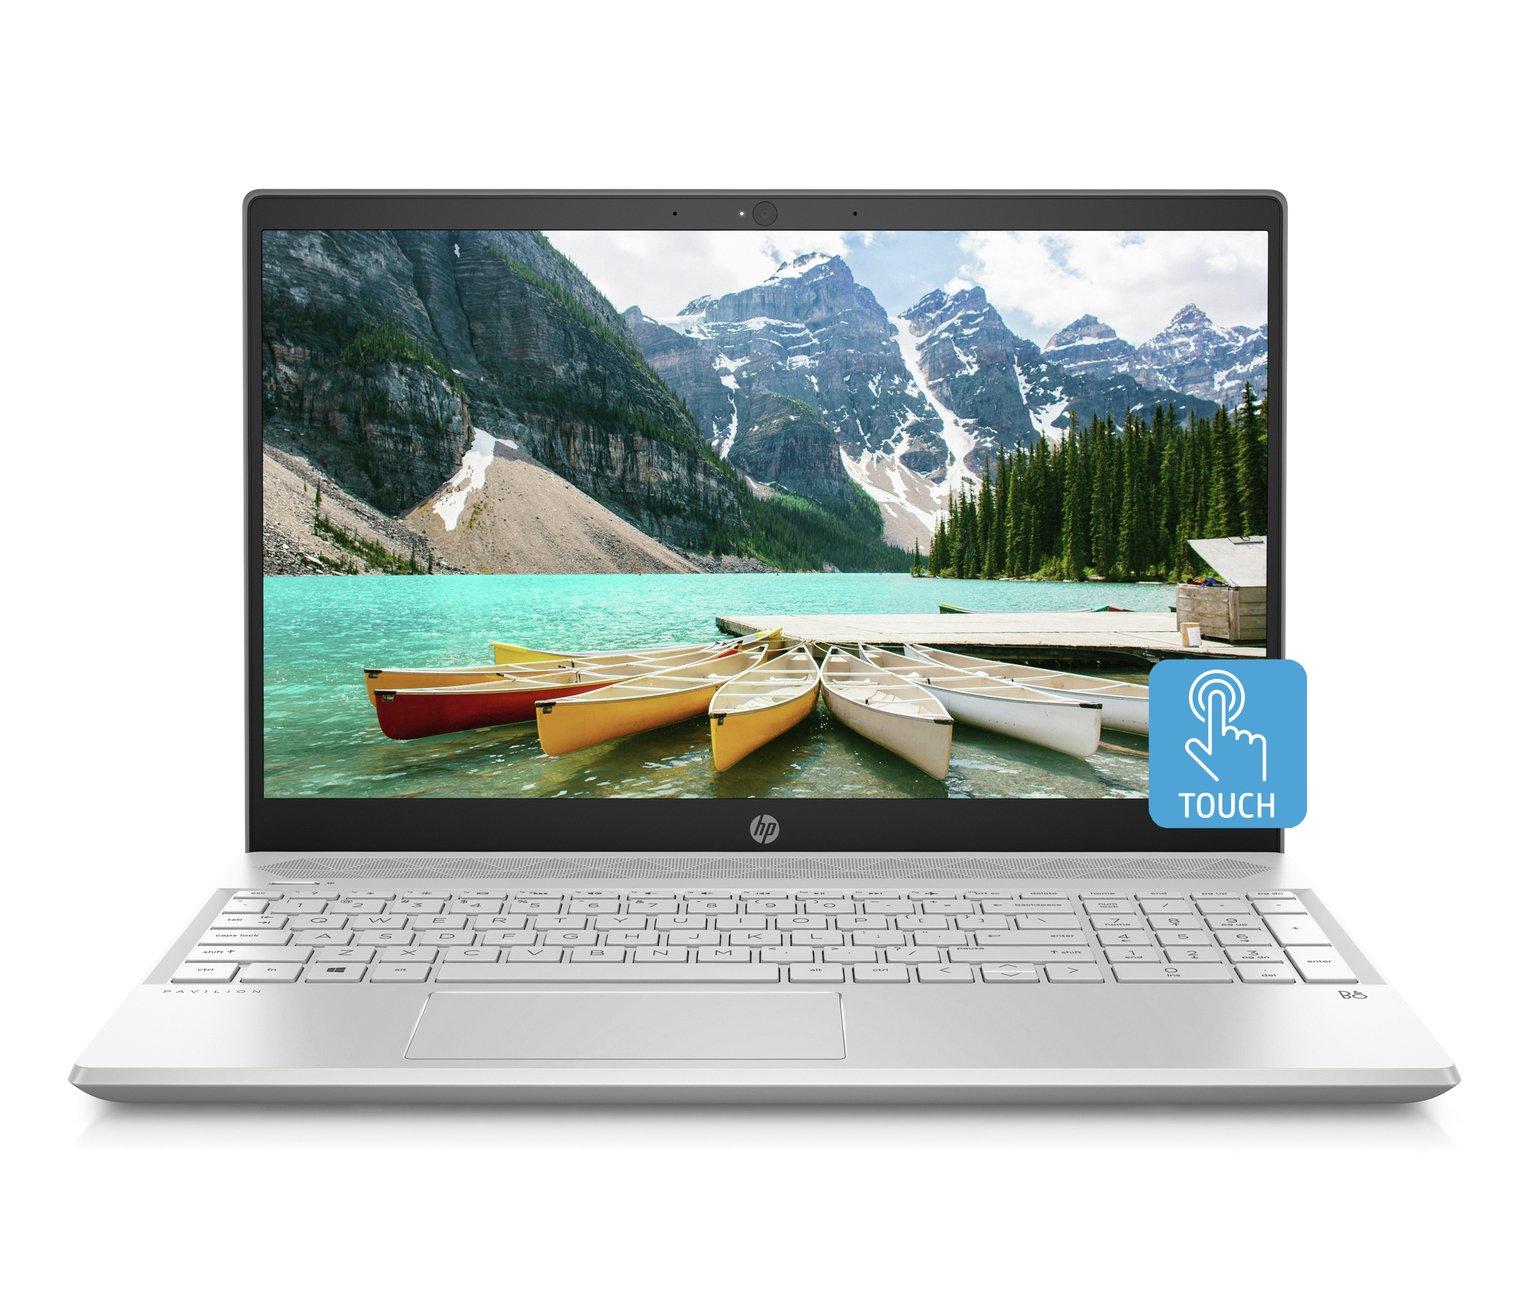 HP Pavilion 15.6 Inch A9 4GB 128GB FHD Touch Laptop - Silver